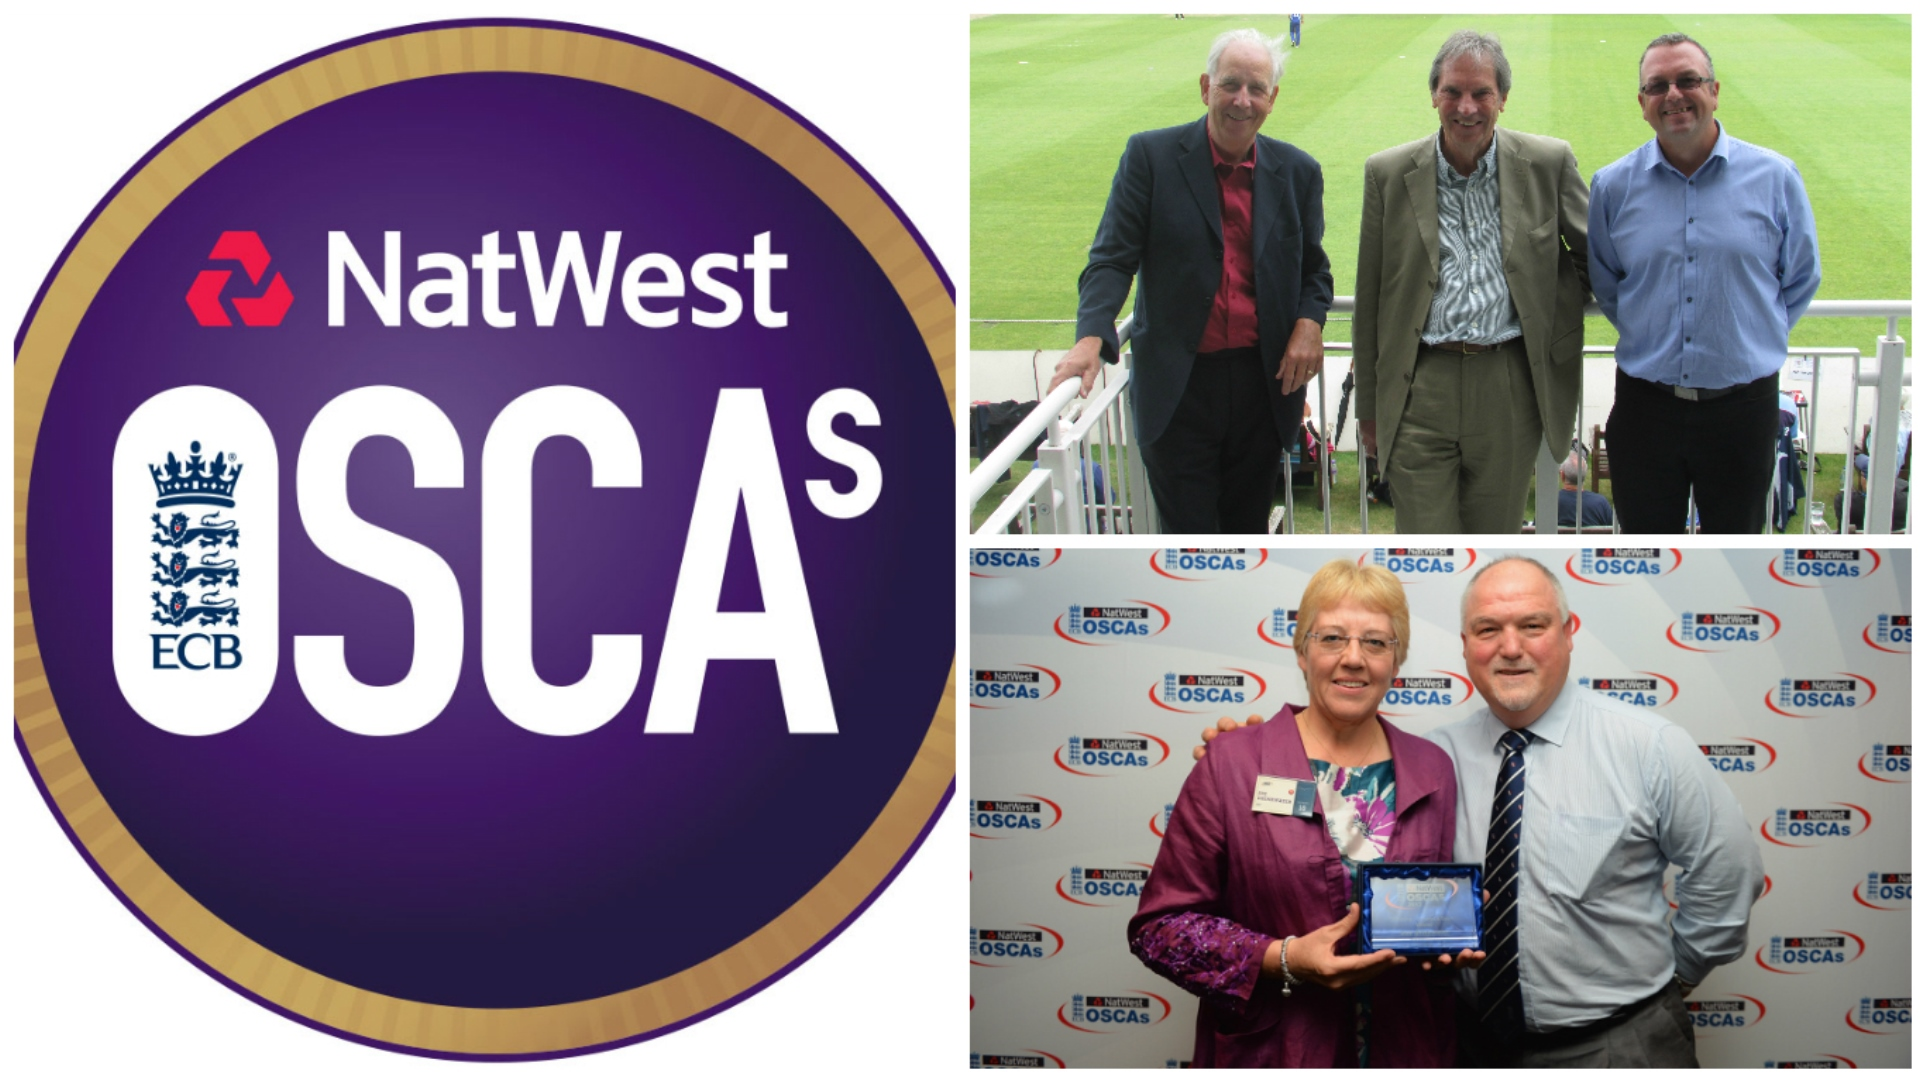 NatWest OSCAs – deadline August 18